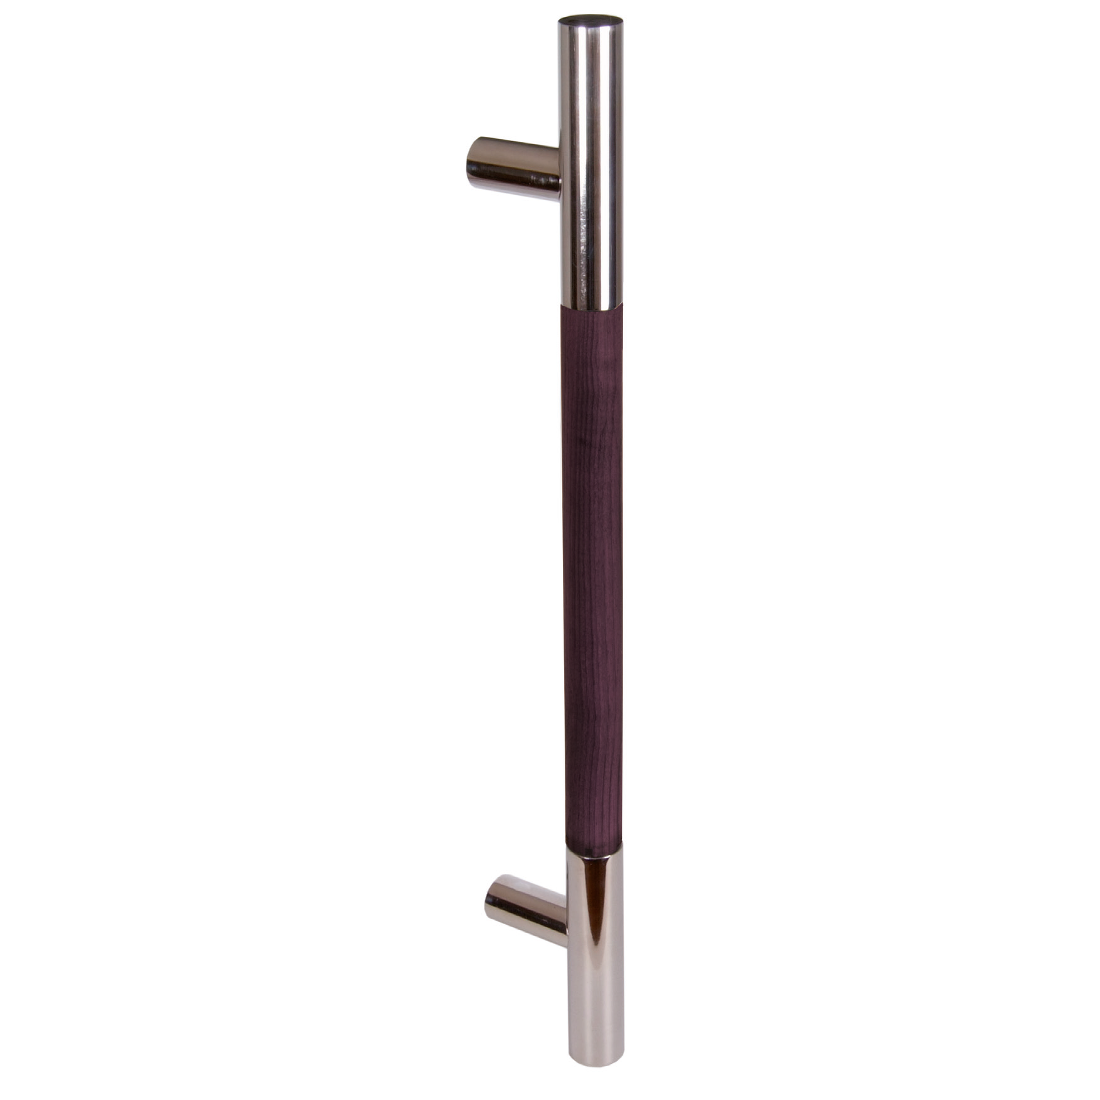 IMPERO WOOD/POLISHED STAINLESS STEEL, WENGE, DRILLING DISTANCE 400MM, SINGLE HANDLE